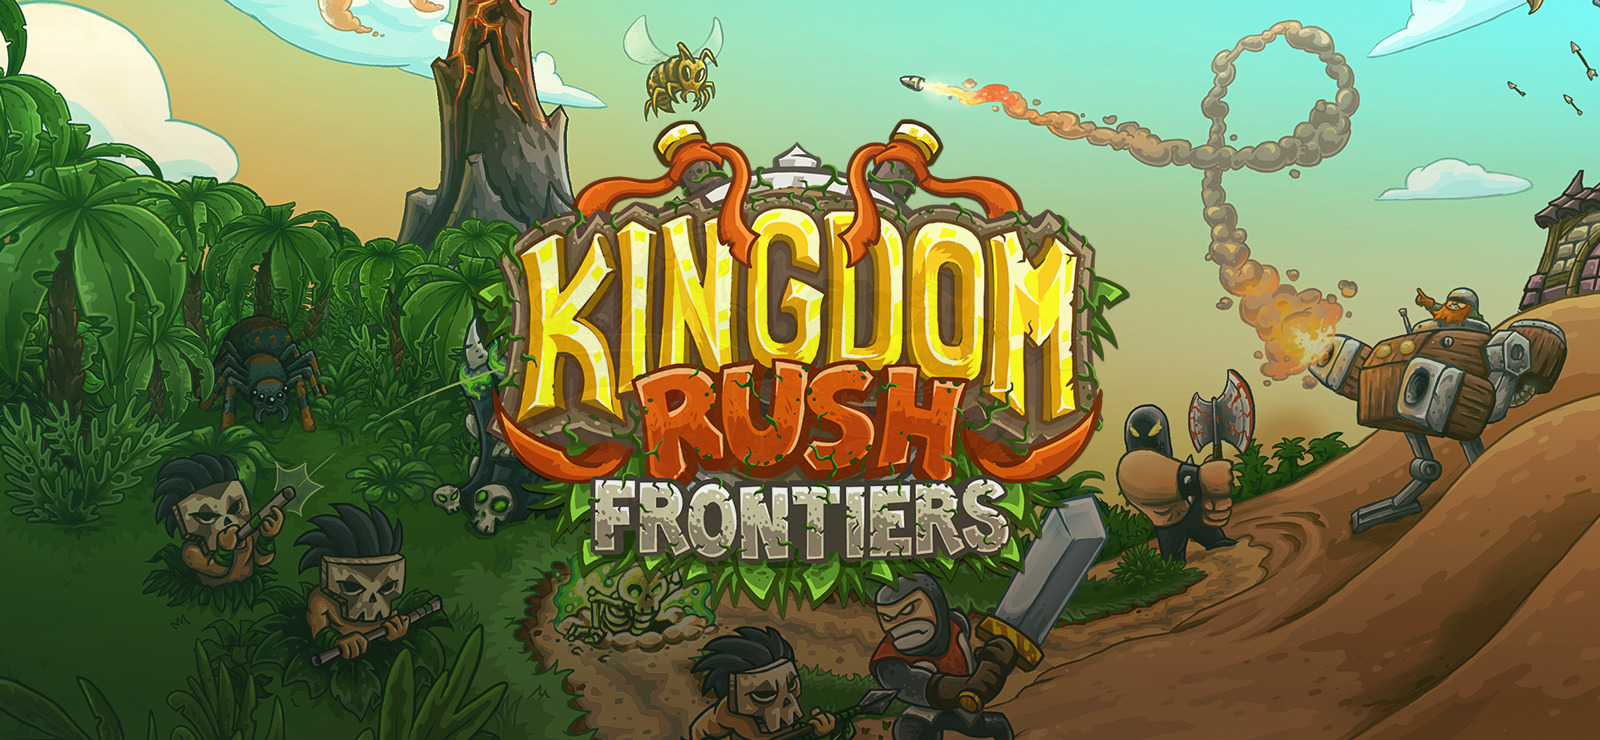 Kingdom rush frontiers review - Kingdom Rush Frontiers Review 46